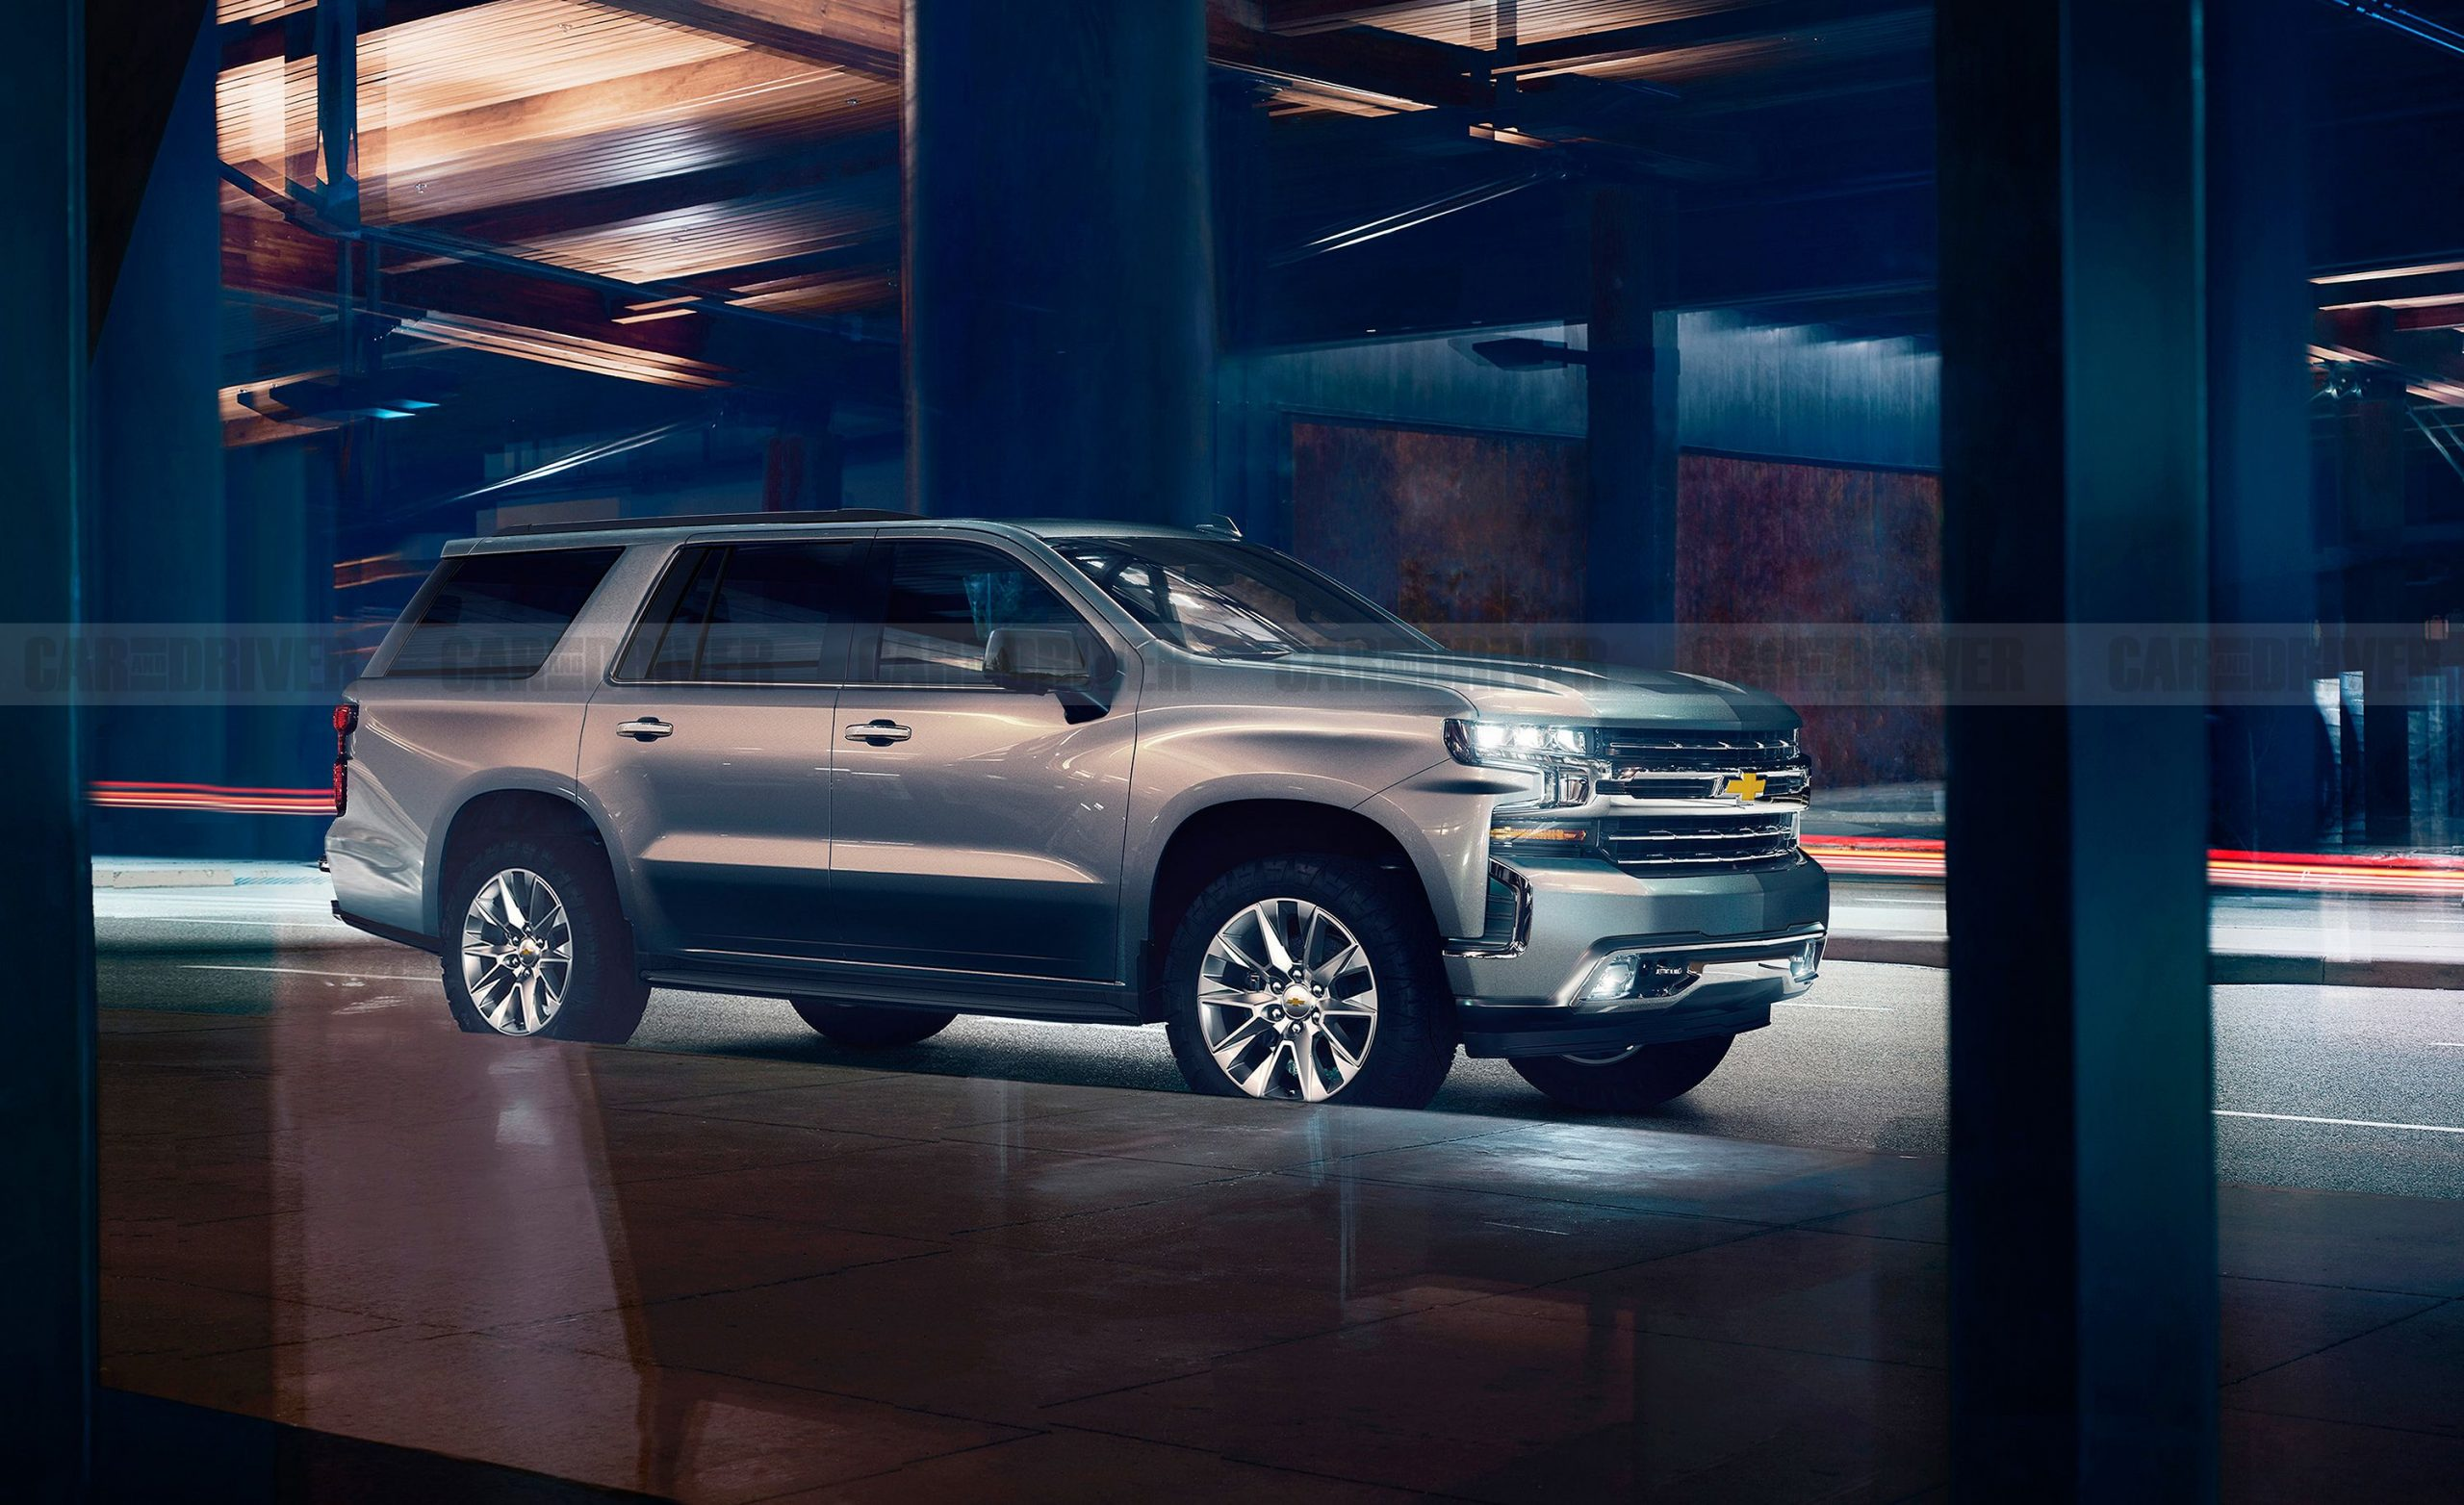 Comments On: The 2021 Chevrolet Tahoe Is A Big Suv That 2021 Chevy Suburban Used, Upgrades, Weight